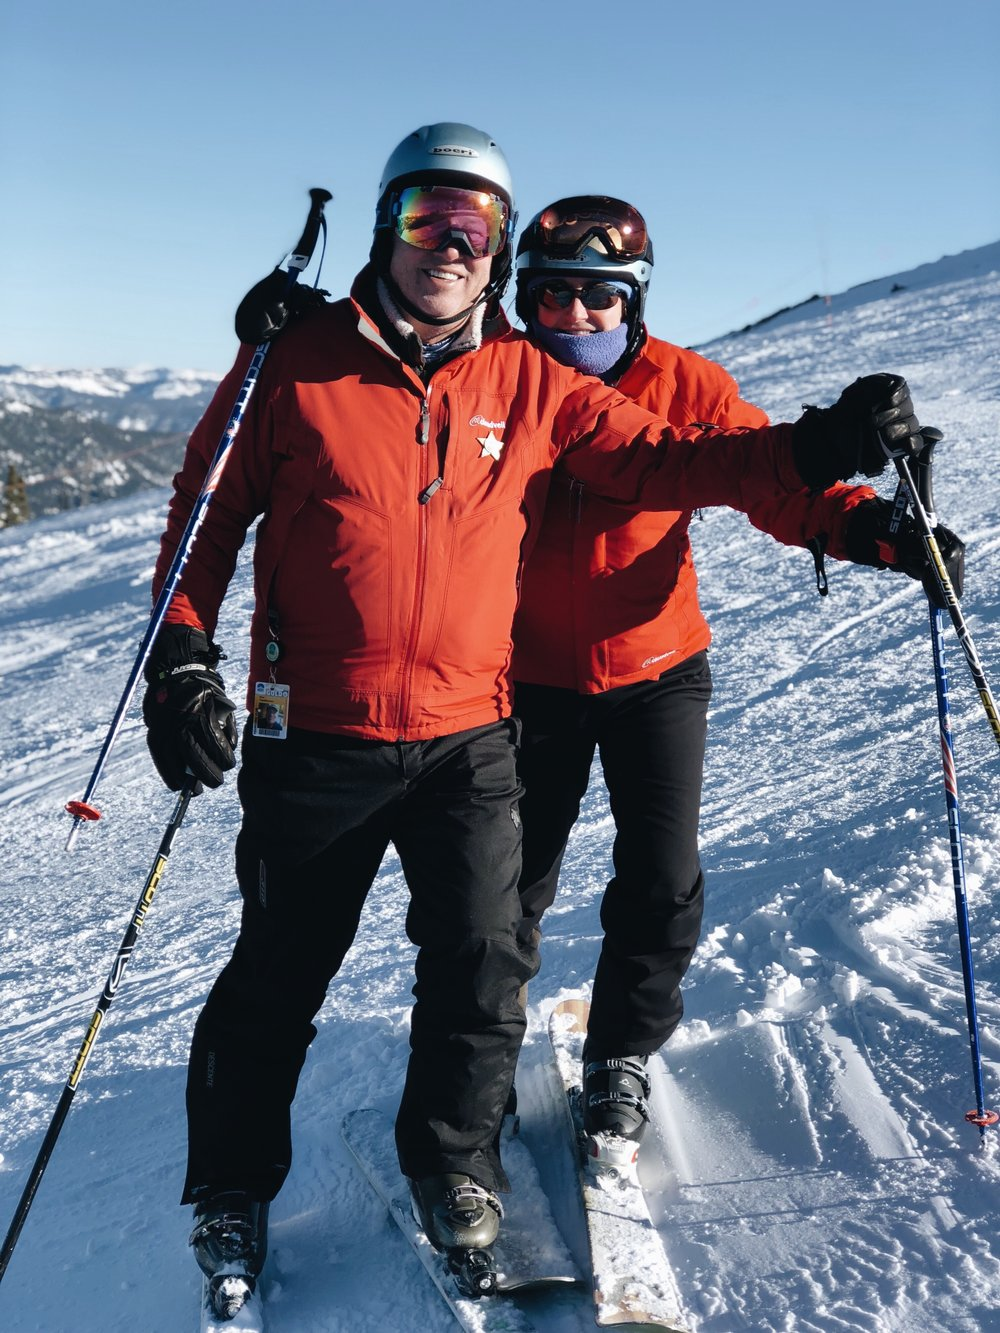 kate and rick skiing